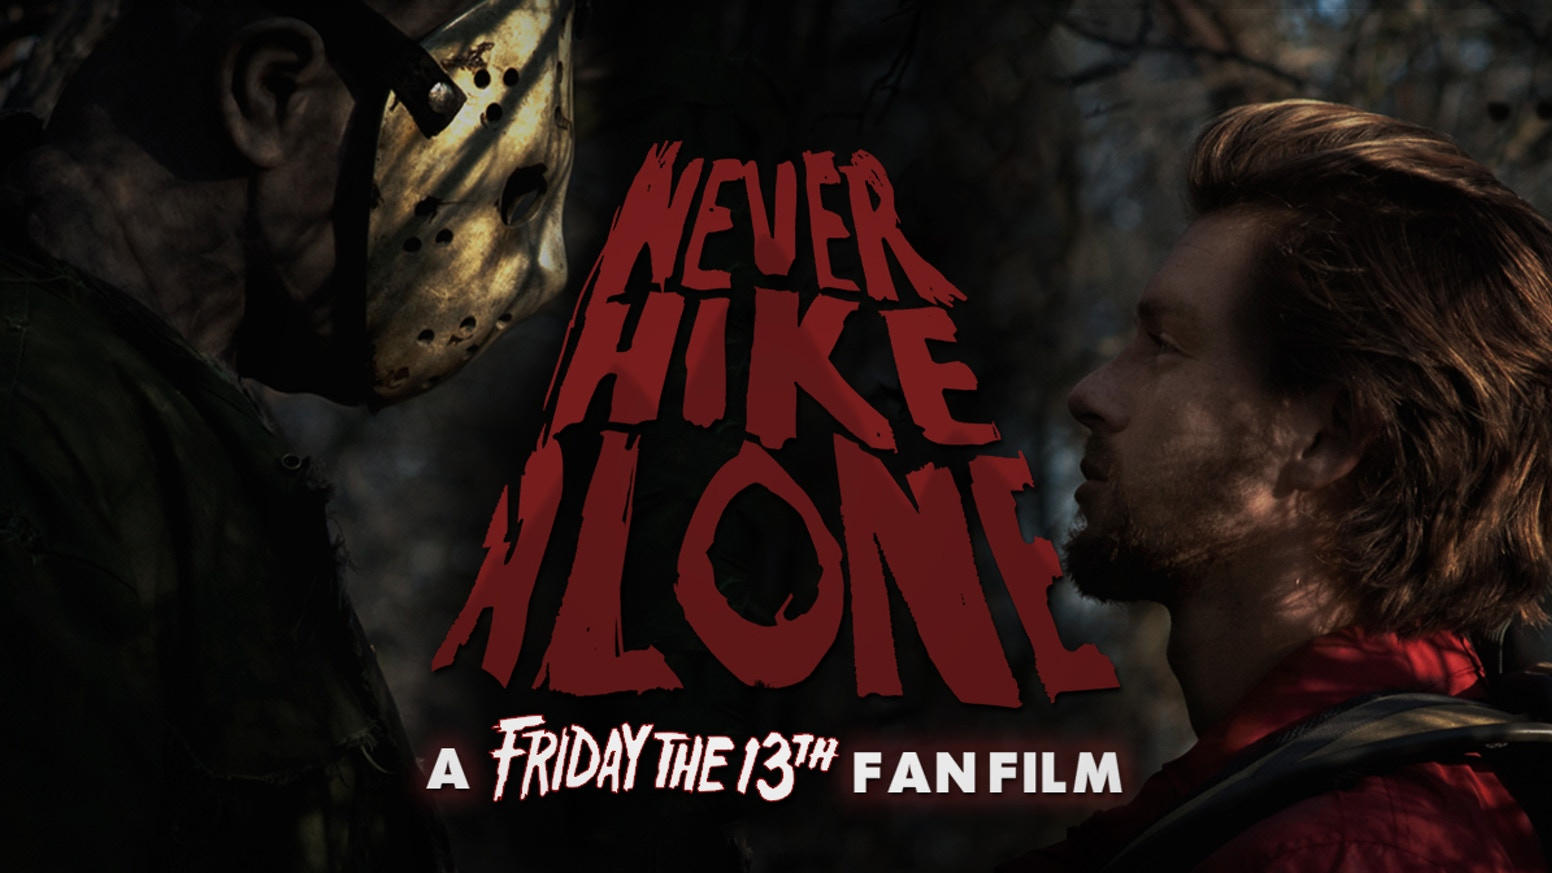 Never Hike Alone follows the story of Kyle McLeod, a young backcountry hiker who discovers the long lost remains of Camp Crystal Lake.